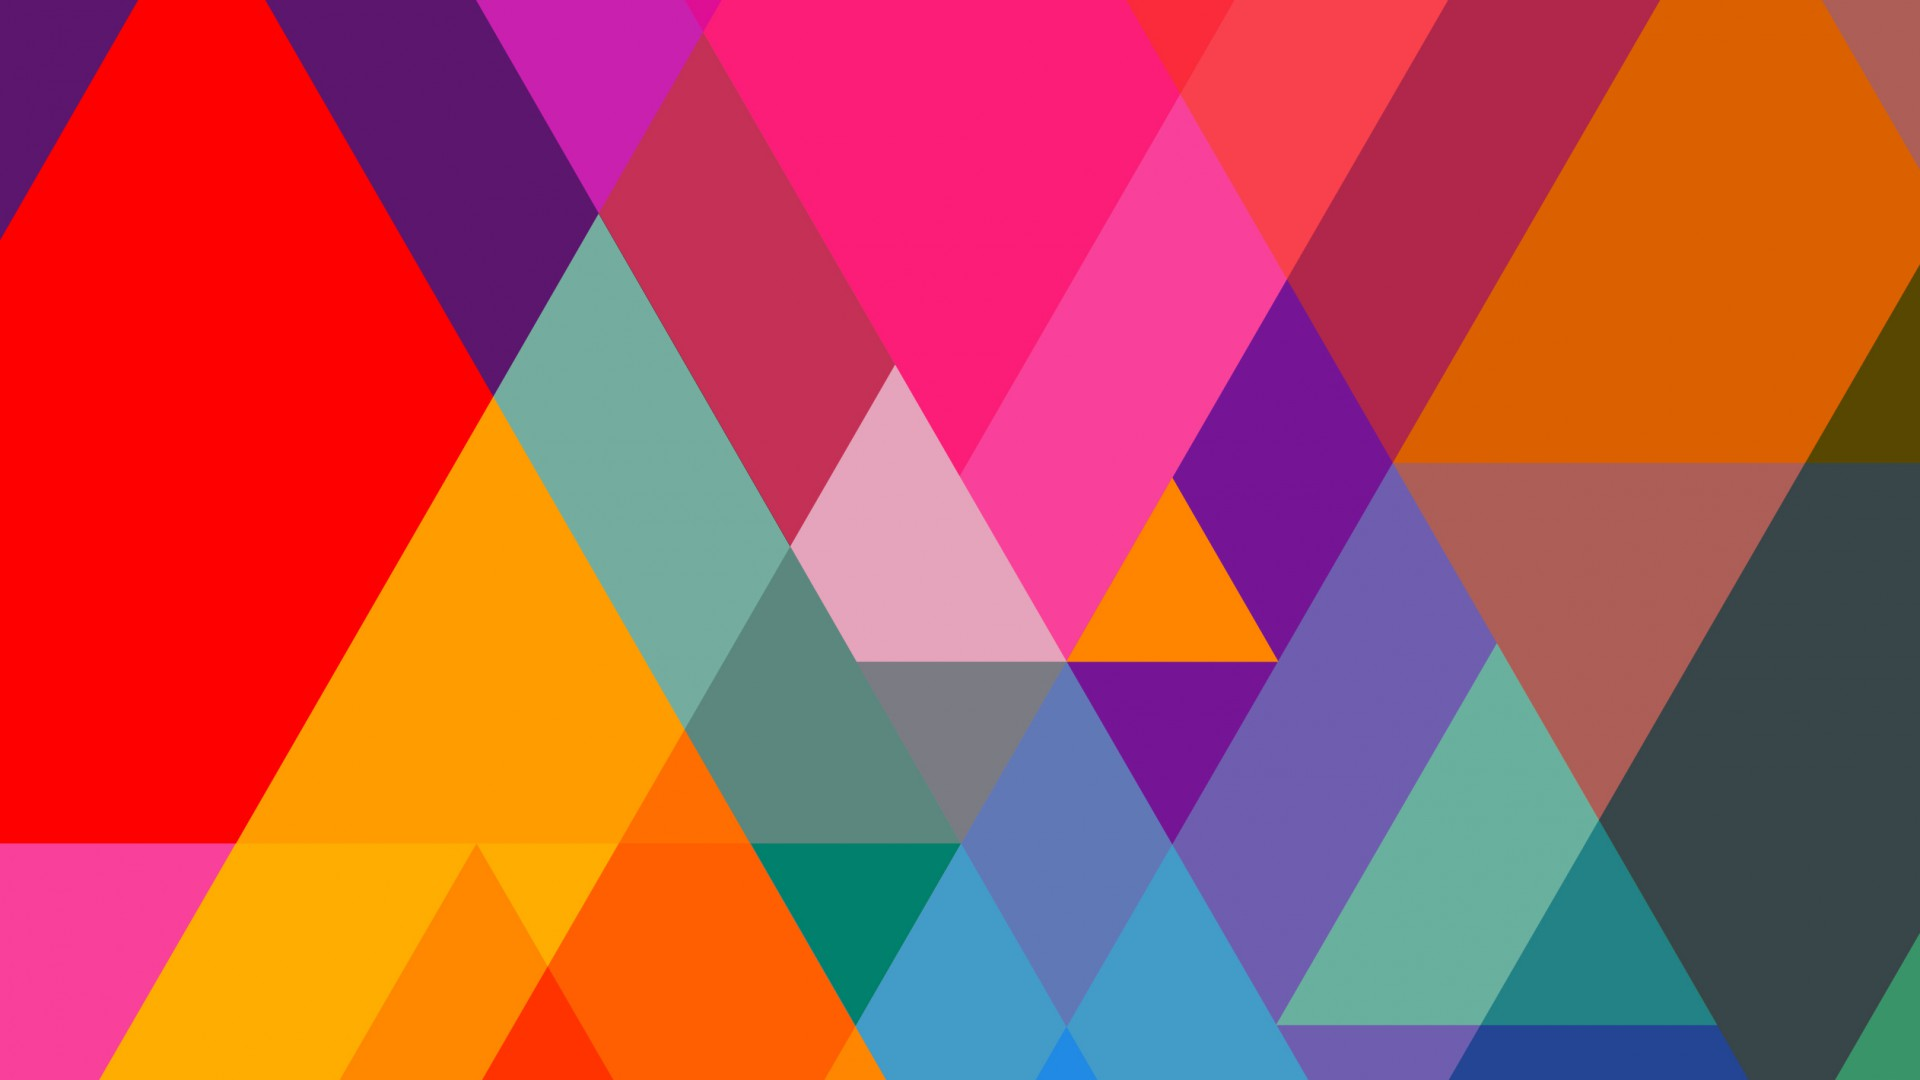 полигон, 4k, 5k, цветной, андроид, фон, polygon, 4k, 5k wallpaper, iphone wallpaper, triangle, background, orange, red, blue, pattern